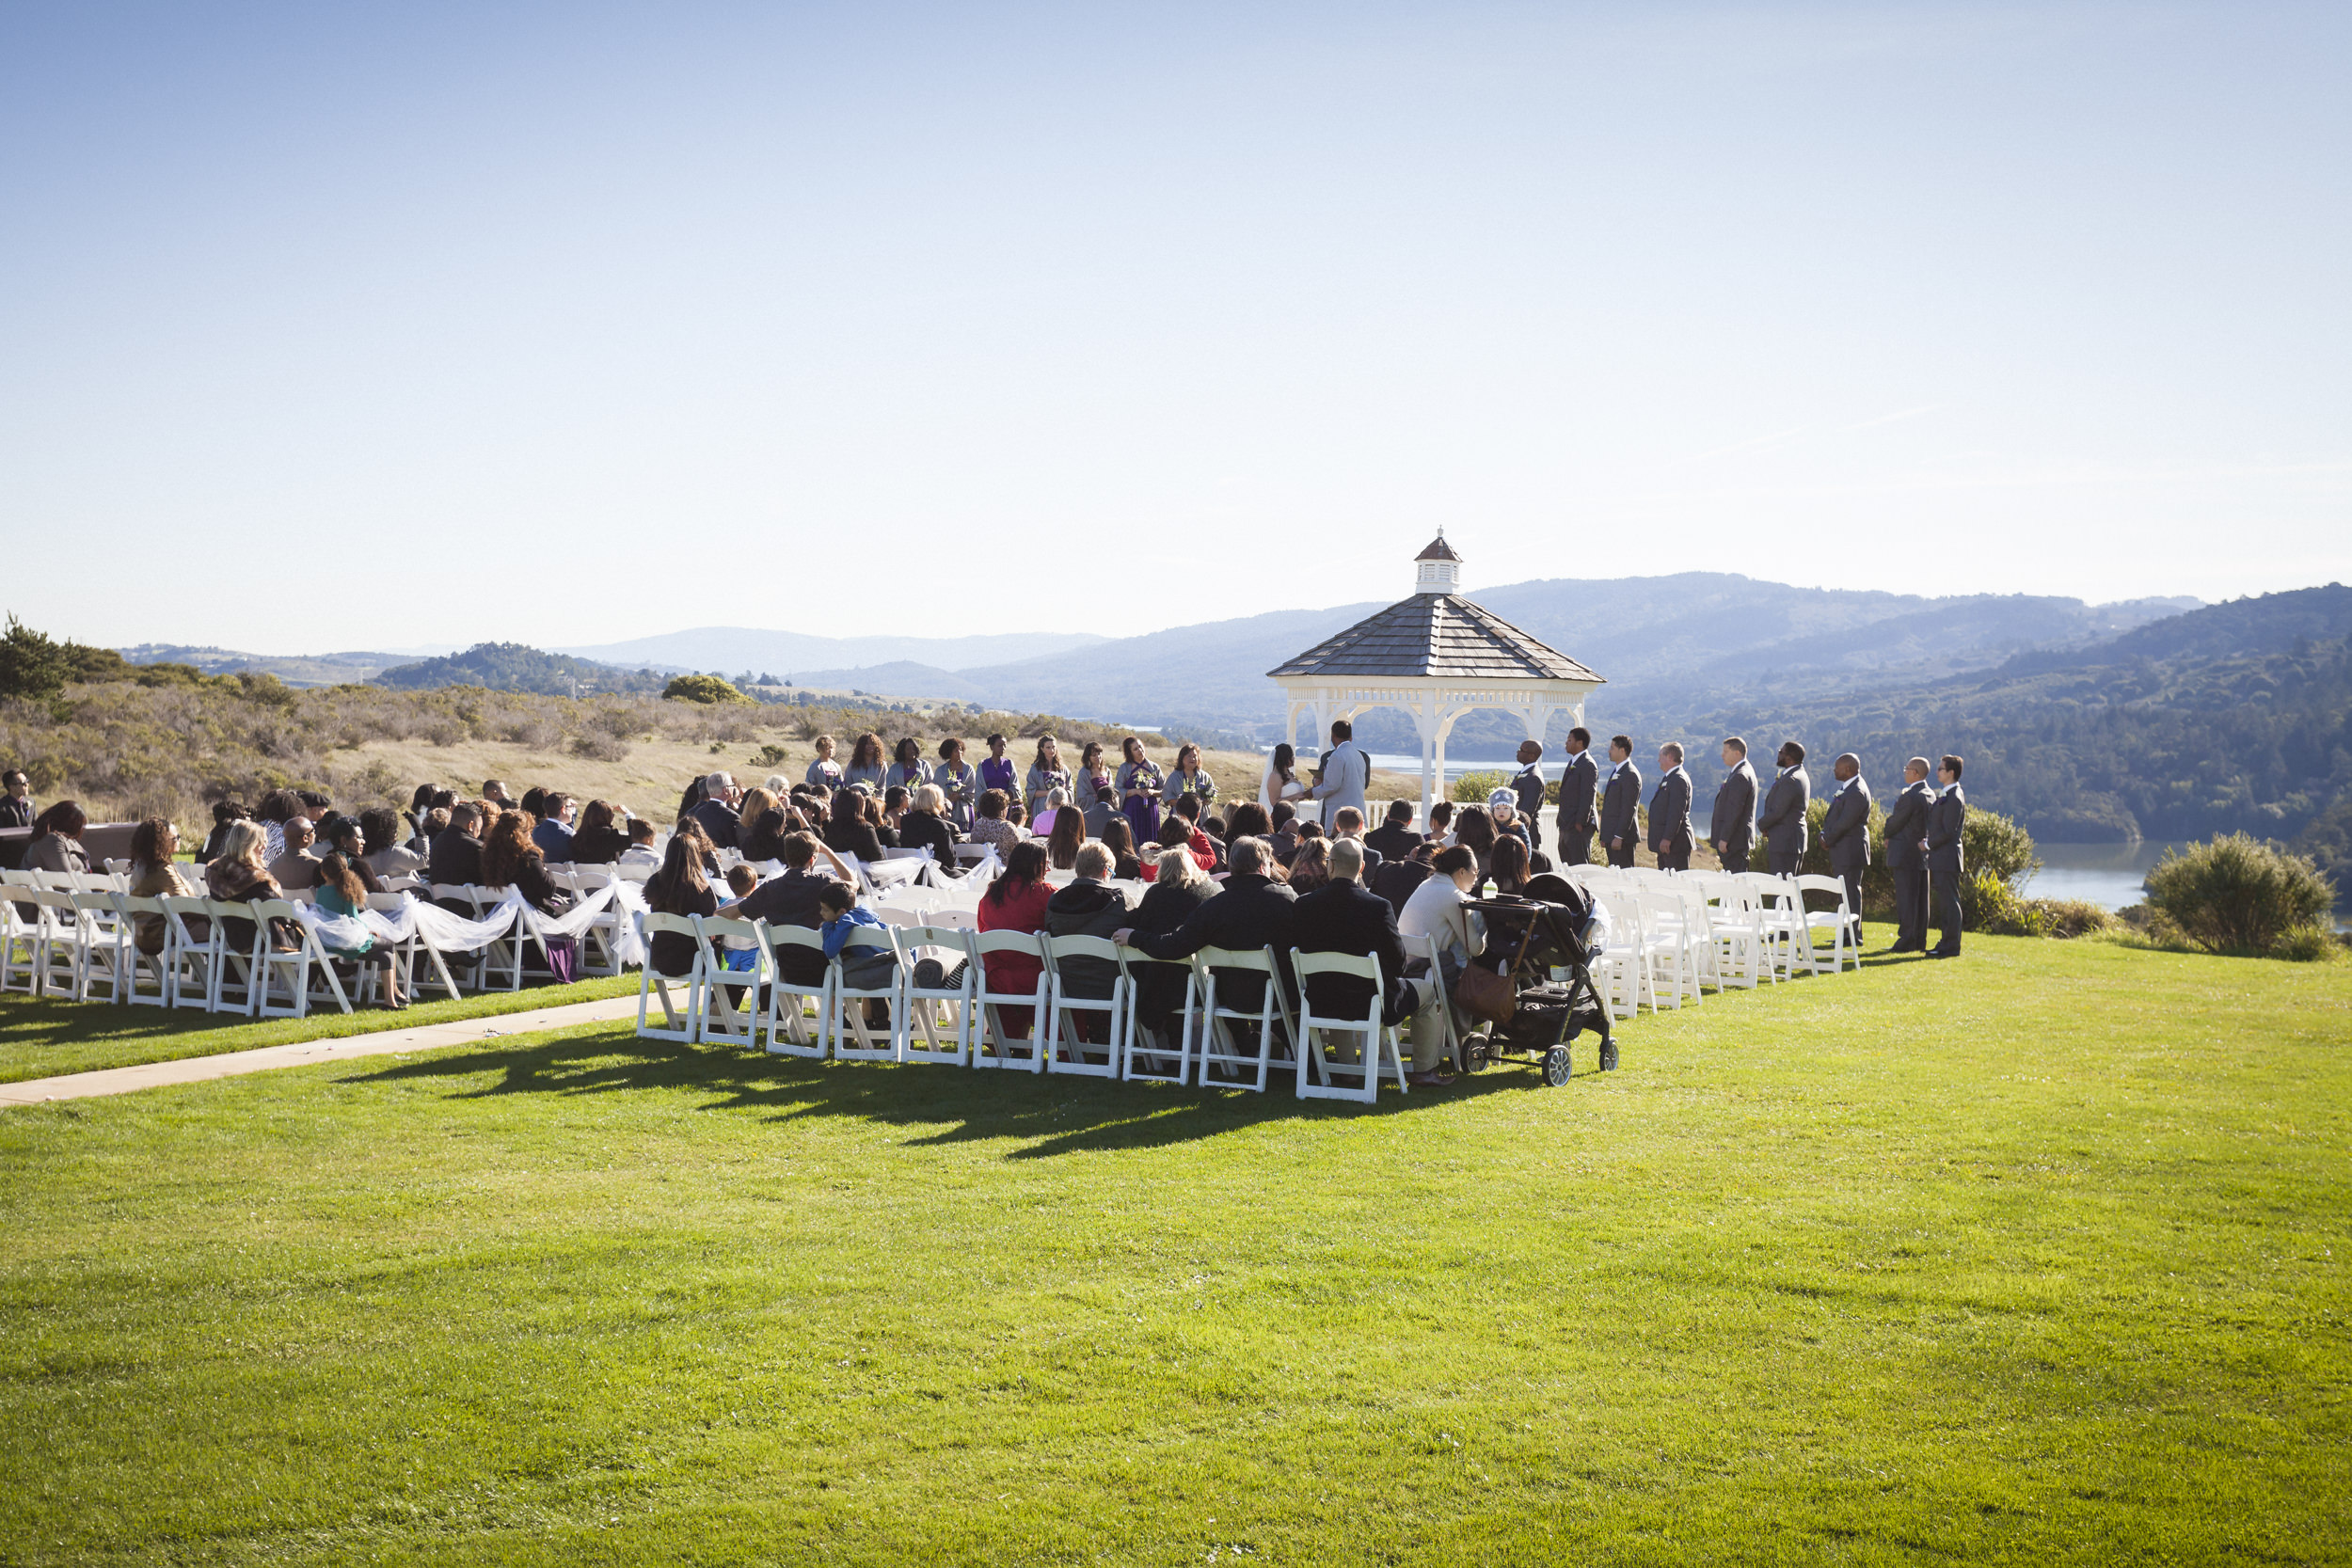 crystal-springs-golf-course-wedding-ceremony-view-1.jpg